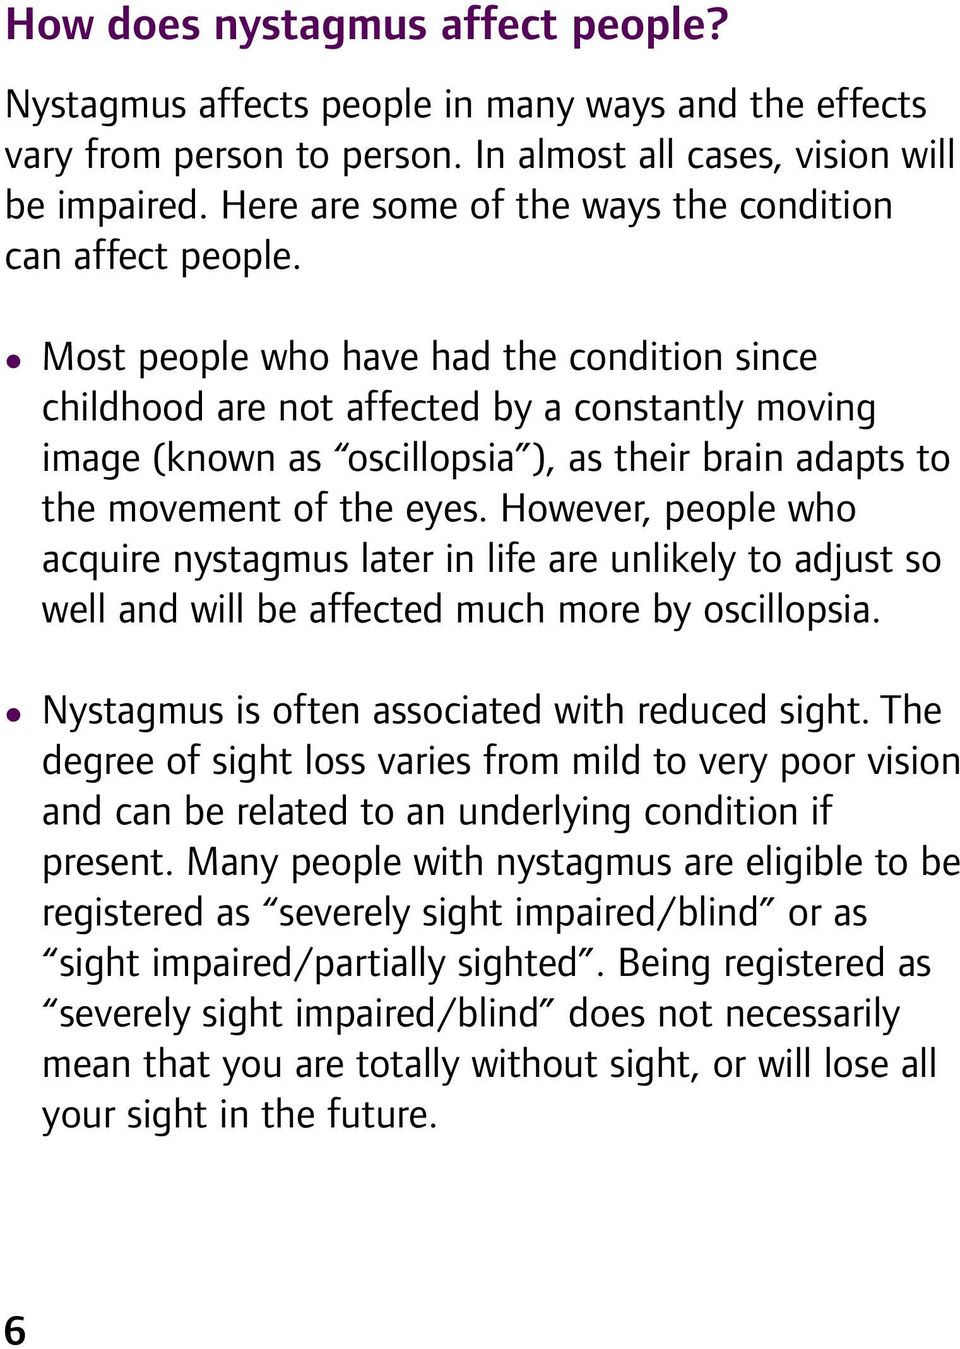 Most peope who have had the condition since chidhood are not affected by a constanty moving image (known as osciopsia ), as their brain adapts to the movement of the eyes.